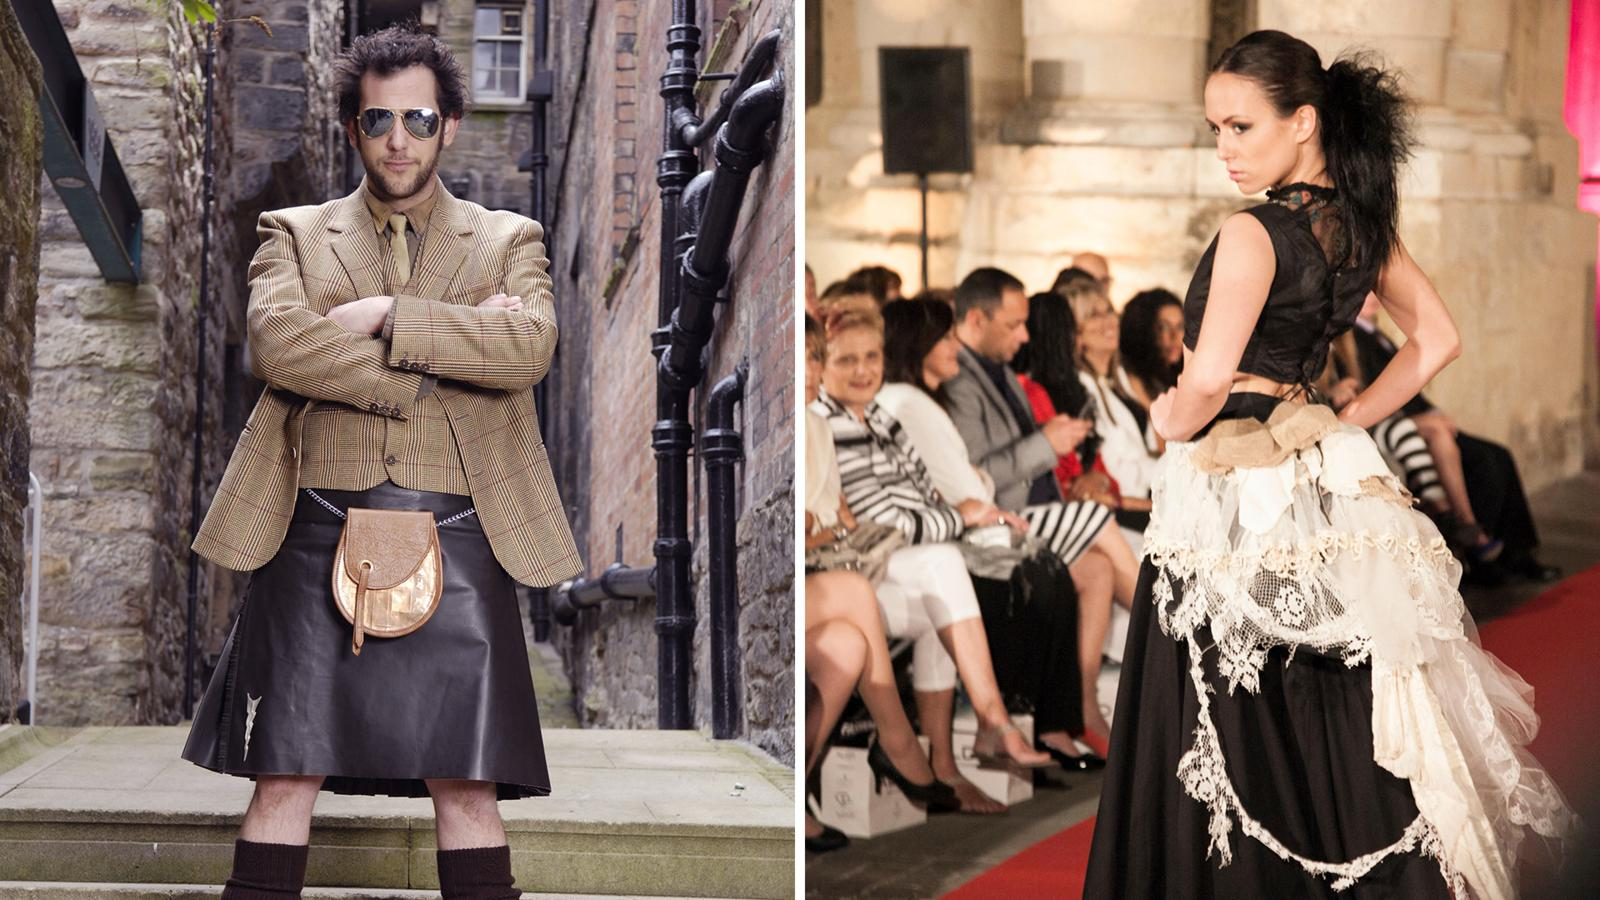 At left, Howie Nicholsby of 21st Century Kilts models his own designs; at right, Judy R Clark's designs incorporate elements like Scottish lace and tartan (Credit: Alamy)